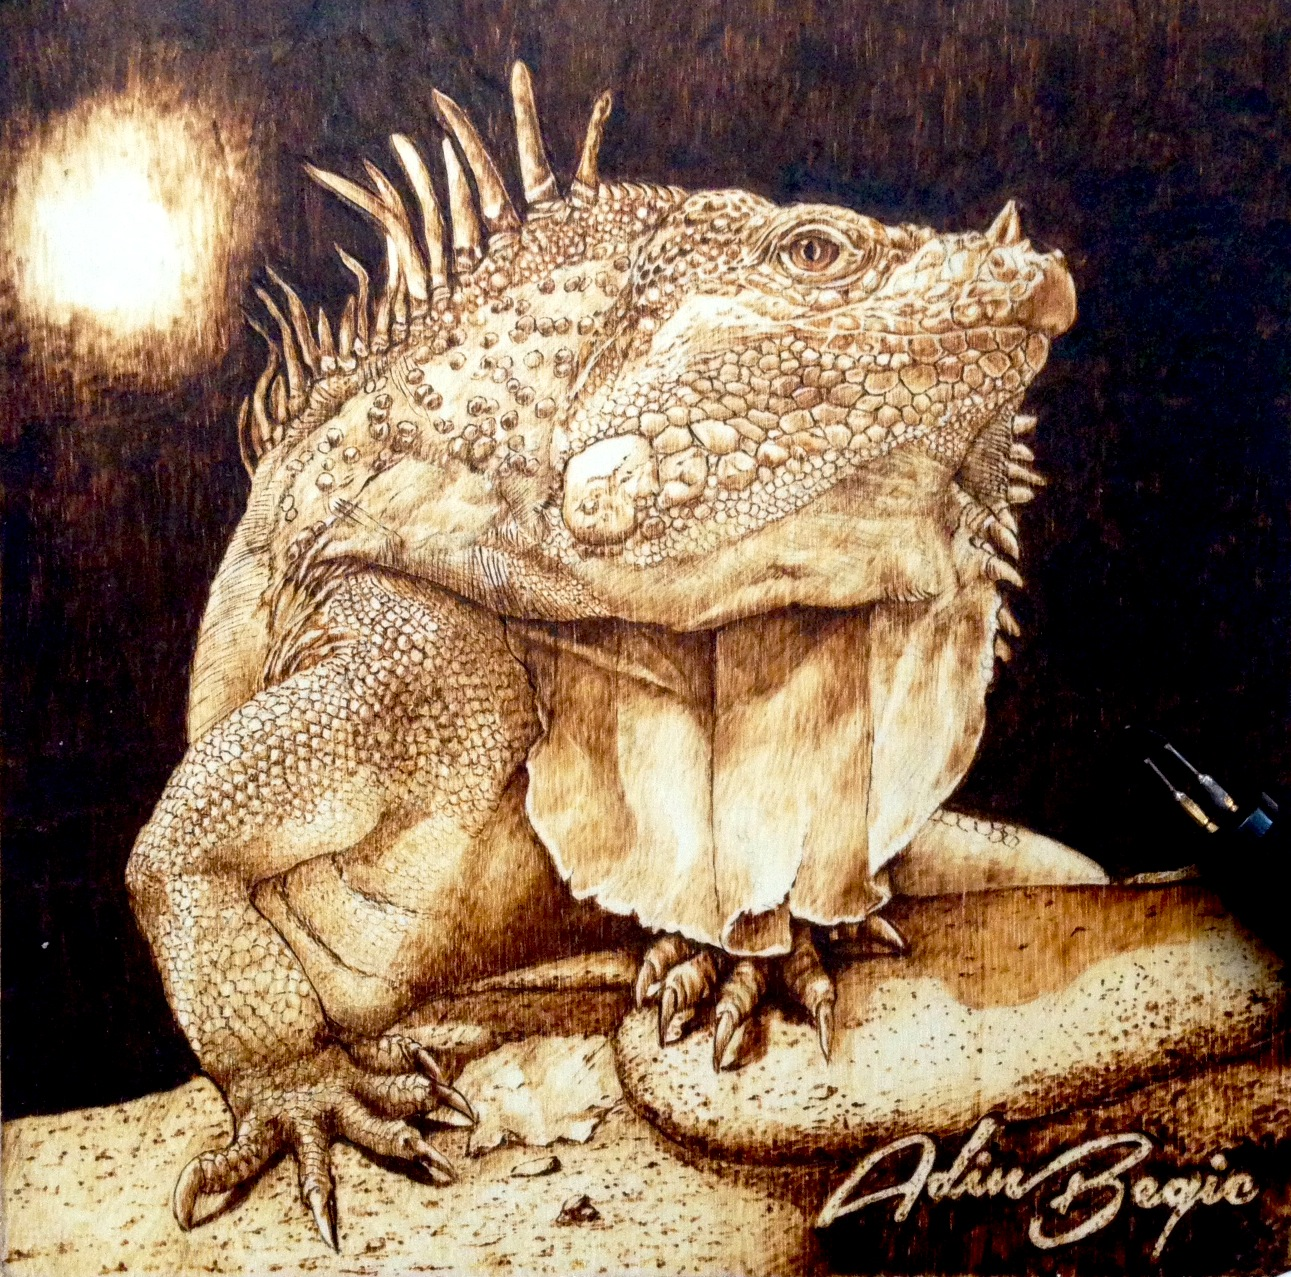 My Pyrography Pyrography Art By Adin Begic Wood Burning